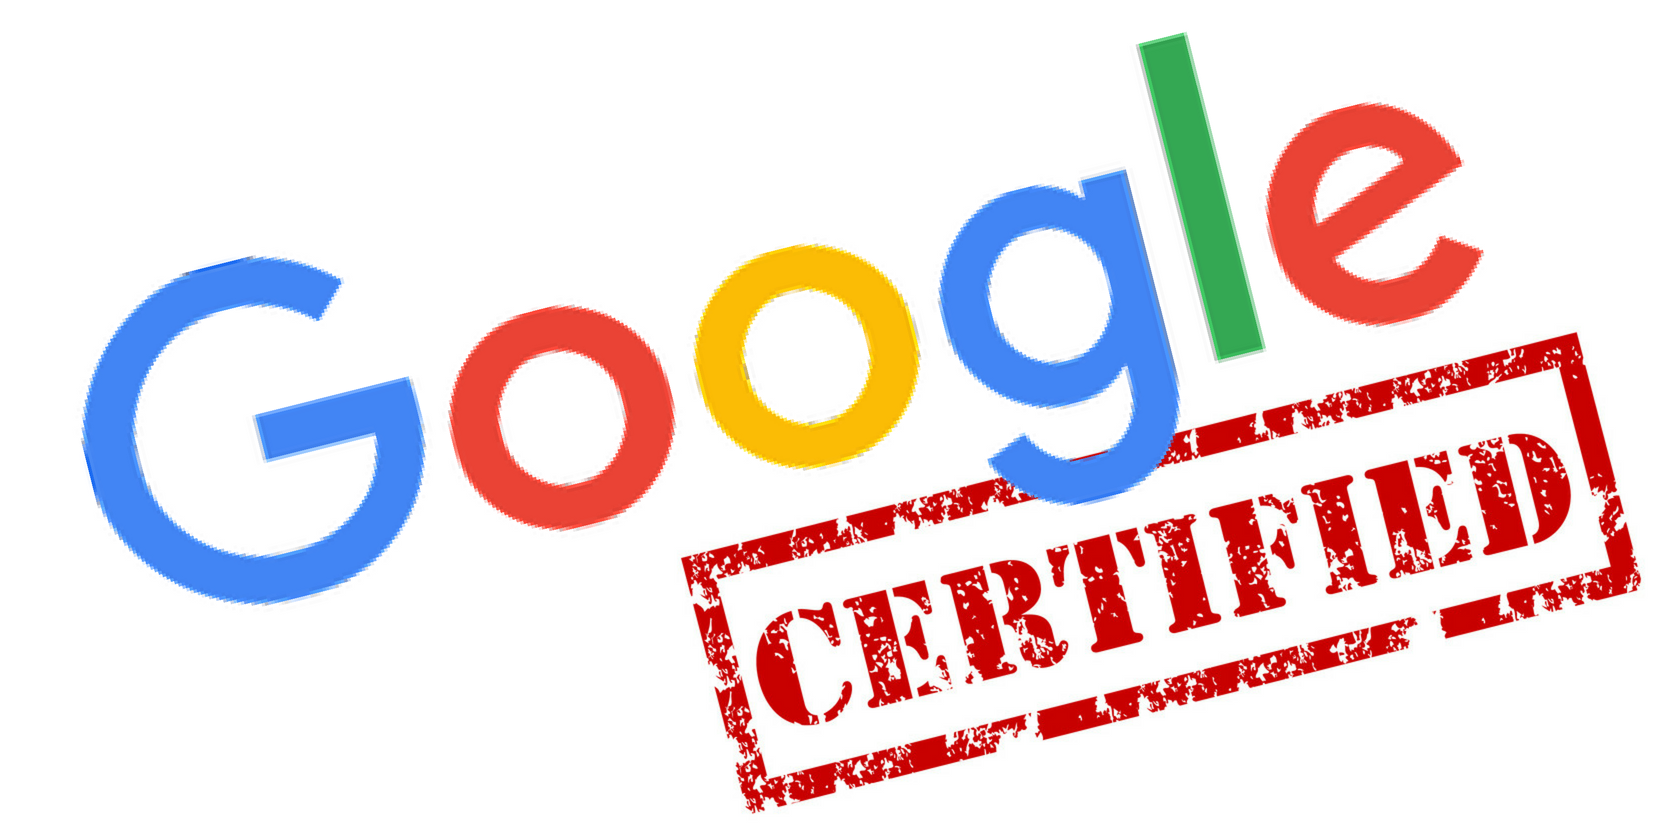 Now You Can Become A Google Certified Mobile Site Developer By